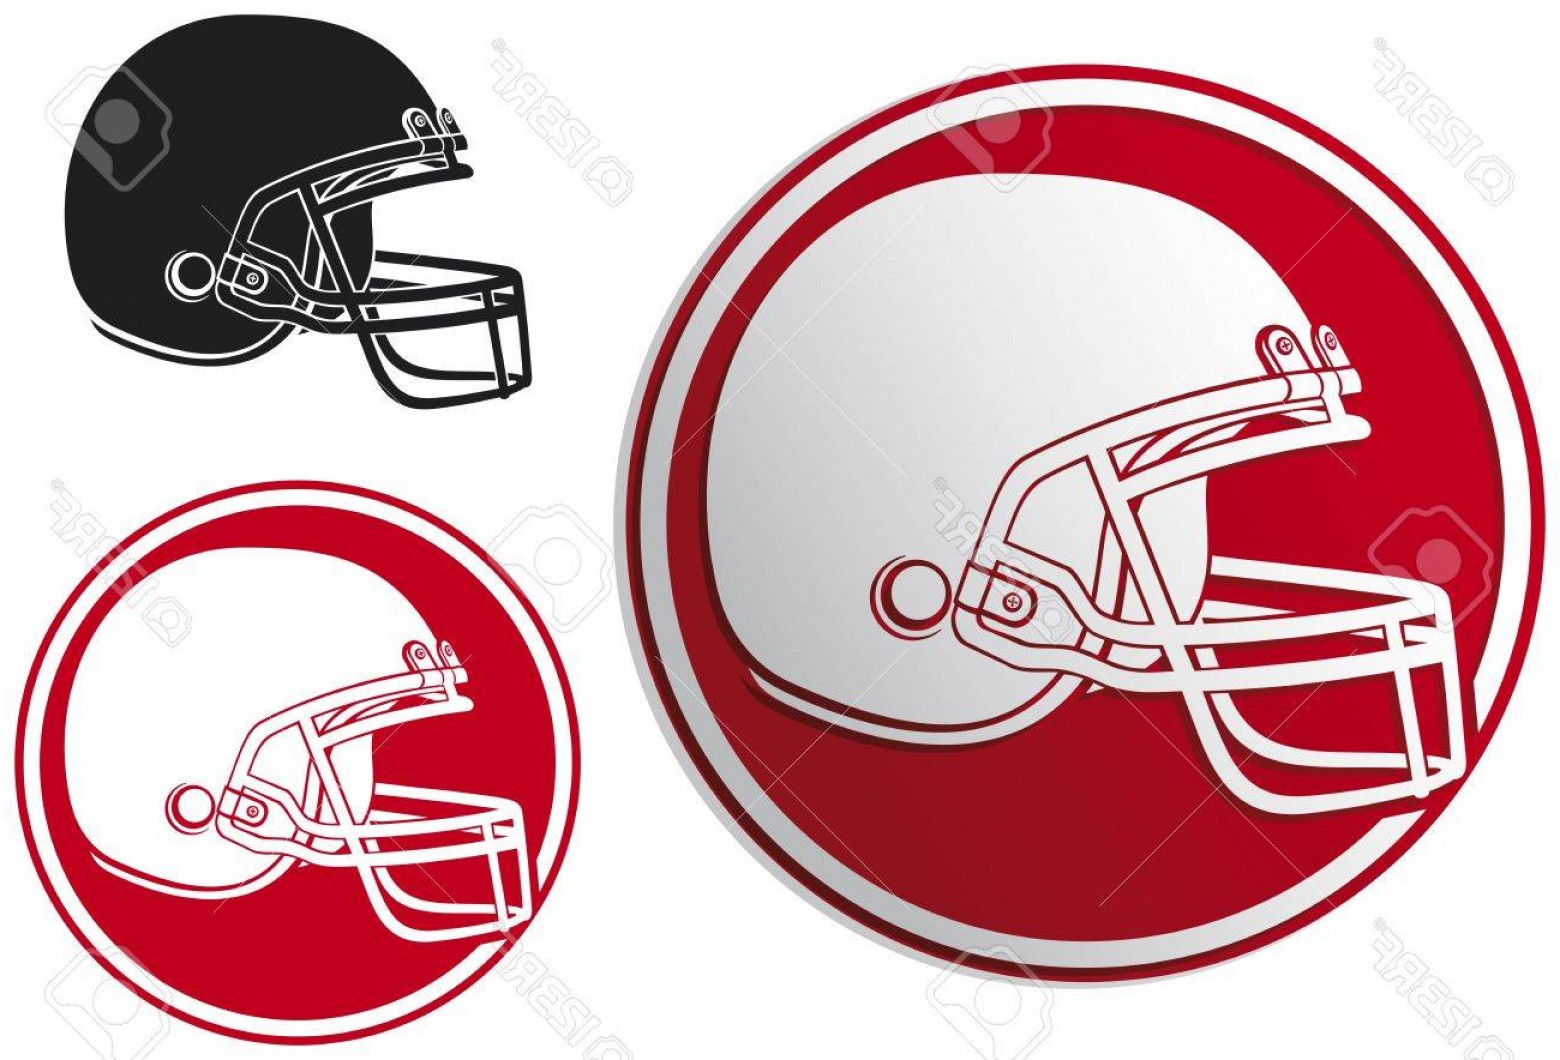 High Res Vector American Football: Photoamerican Football Helmet Icon Helmet Football Team Football Helmet Symbol American Football Helmet L